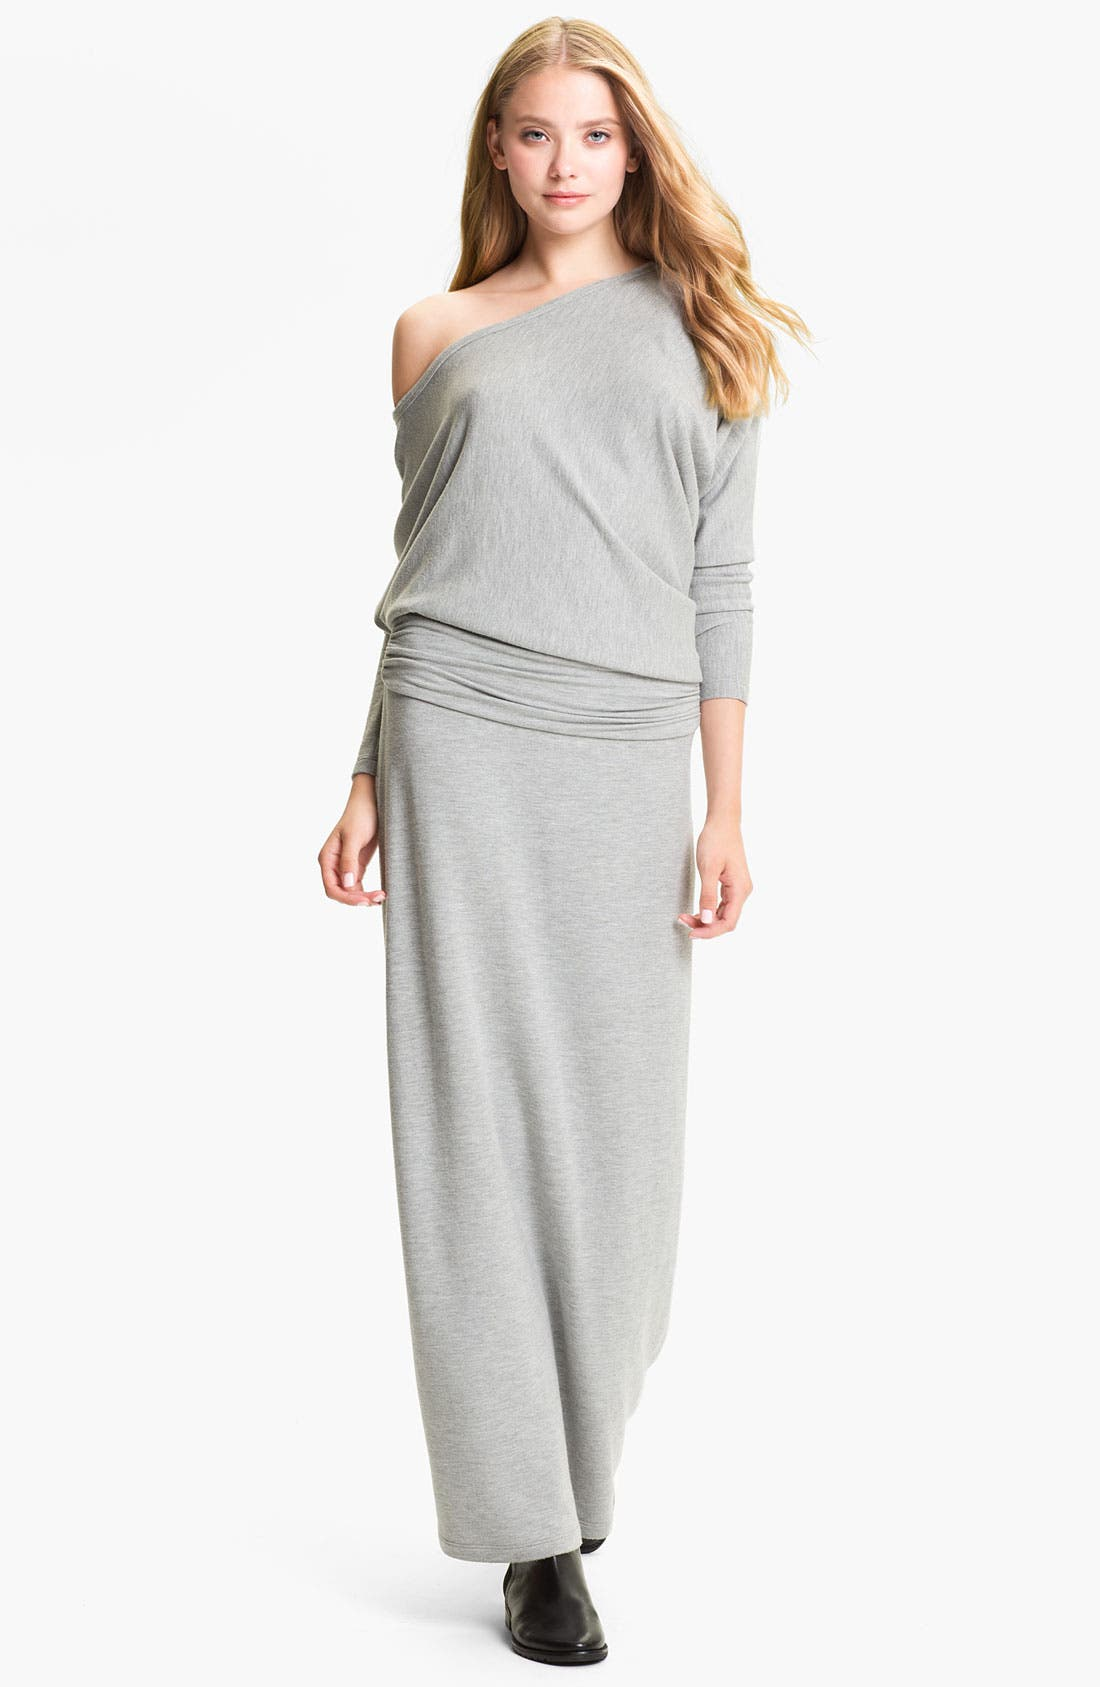 Alternate Image 1 Selected - Tart 'Yvonne' Off the Shoulder Sweater Maxi Dress